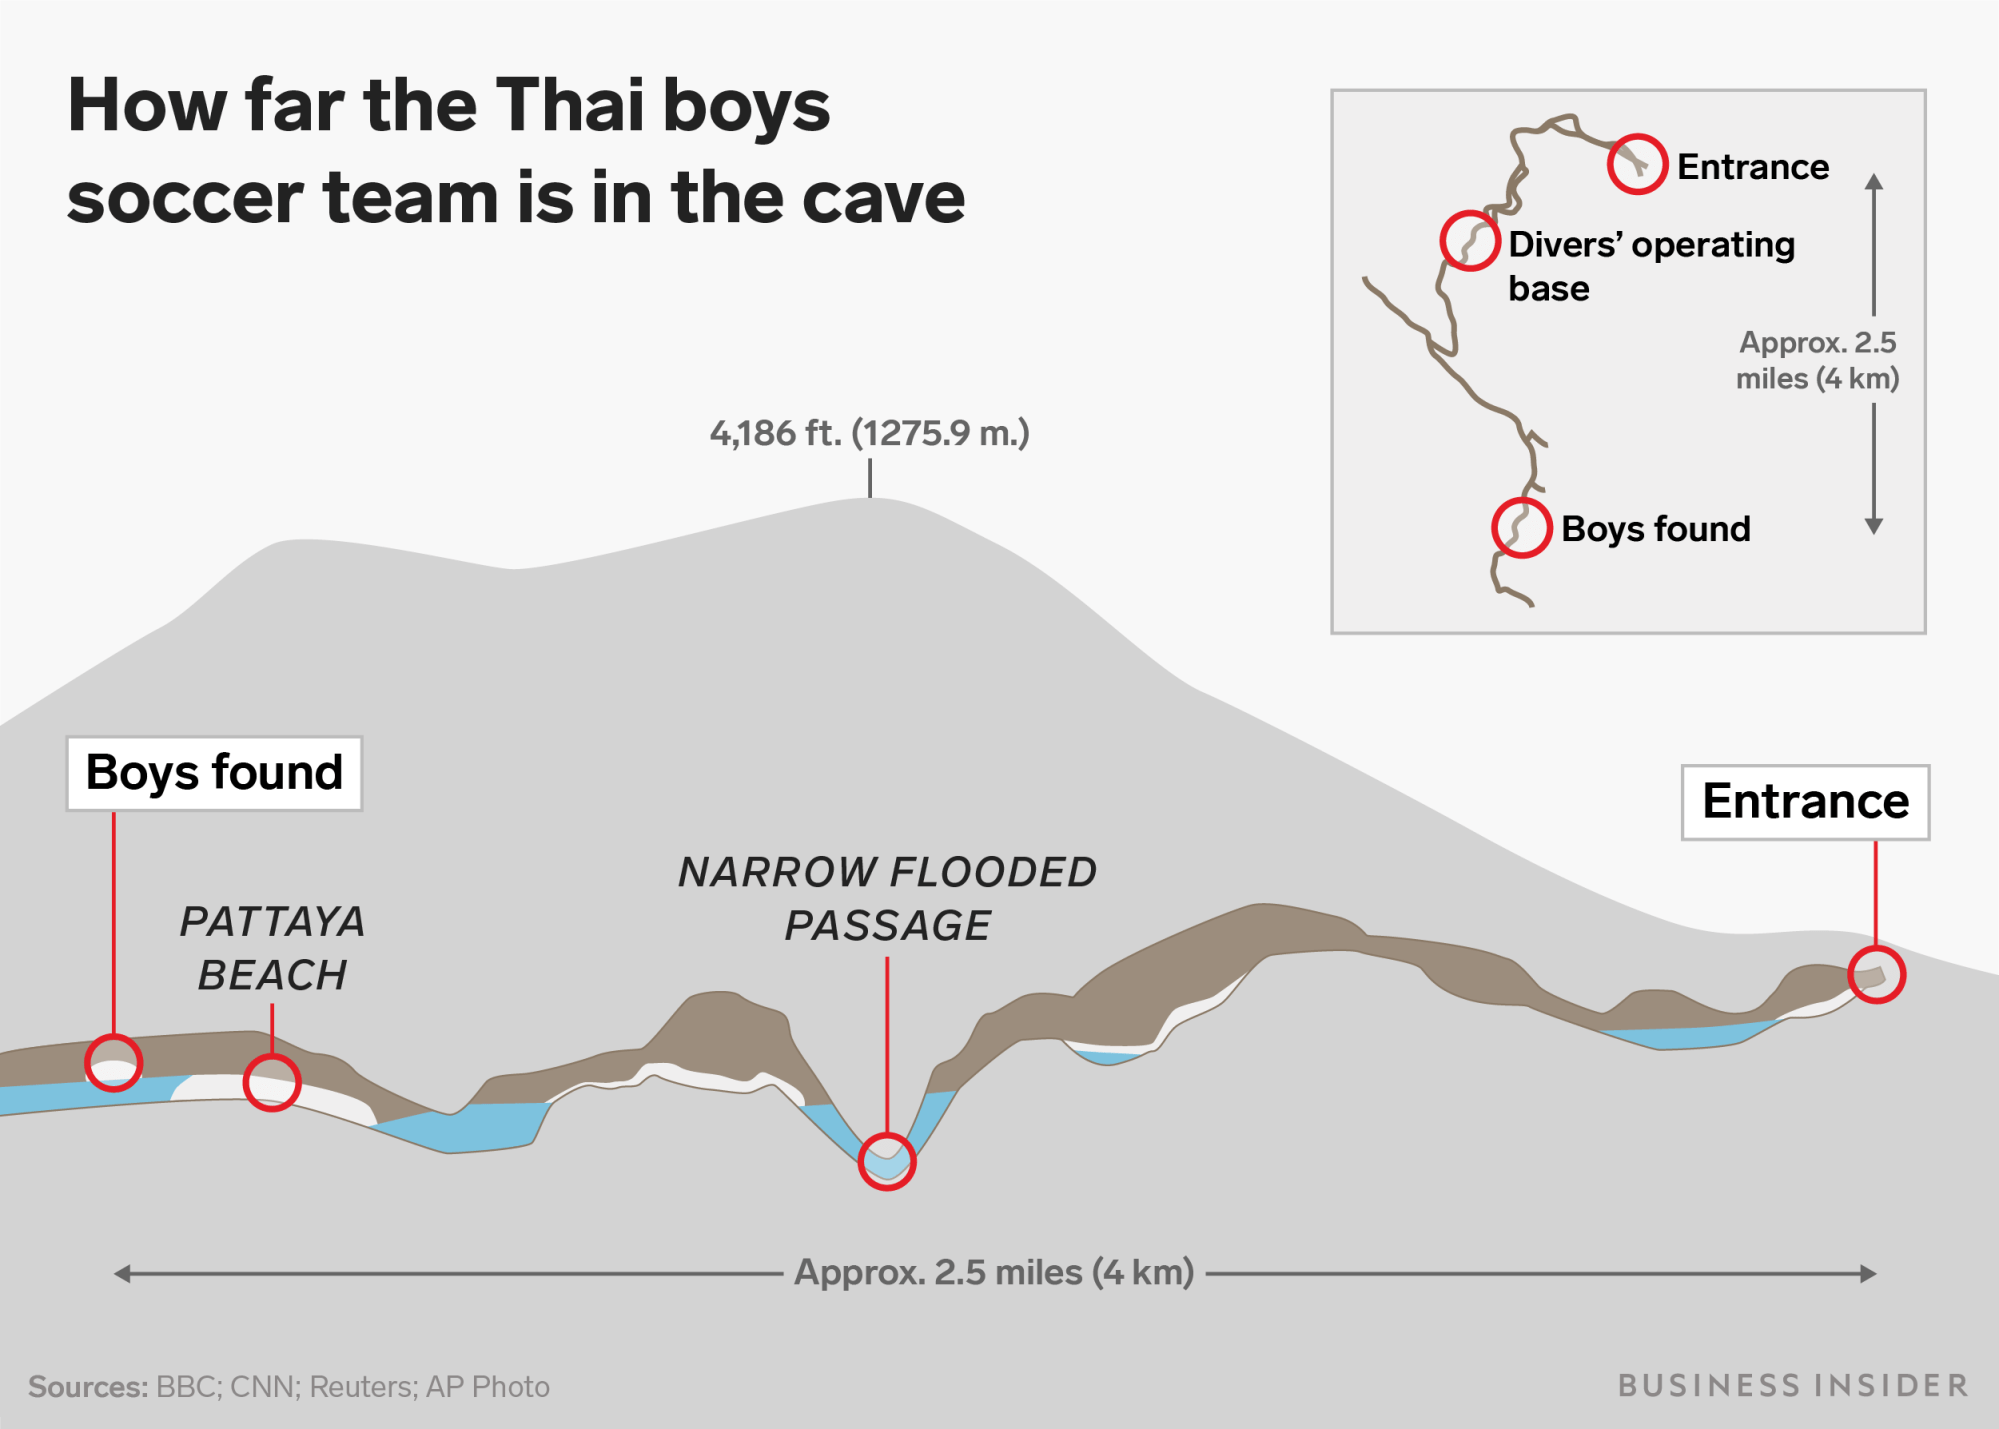 hight resolution of thai boys stuck in cave wide world of snark free jinger diagram of holland diagram of kids in cave